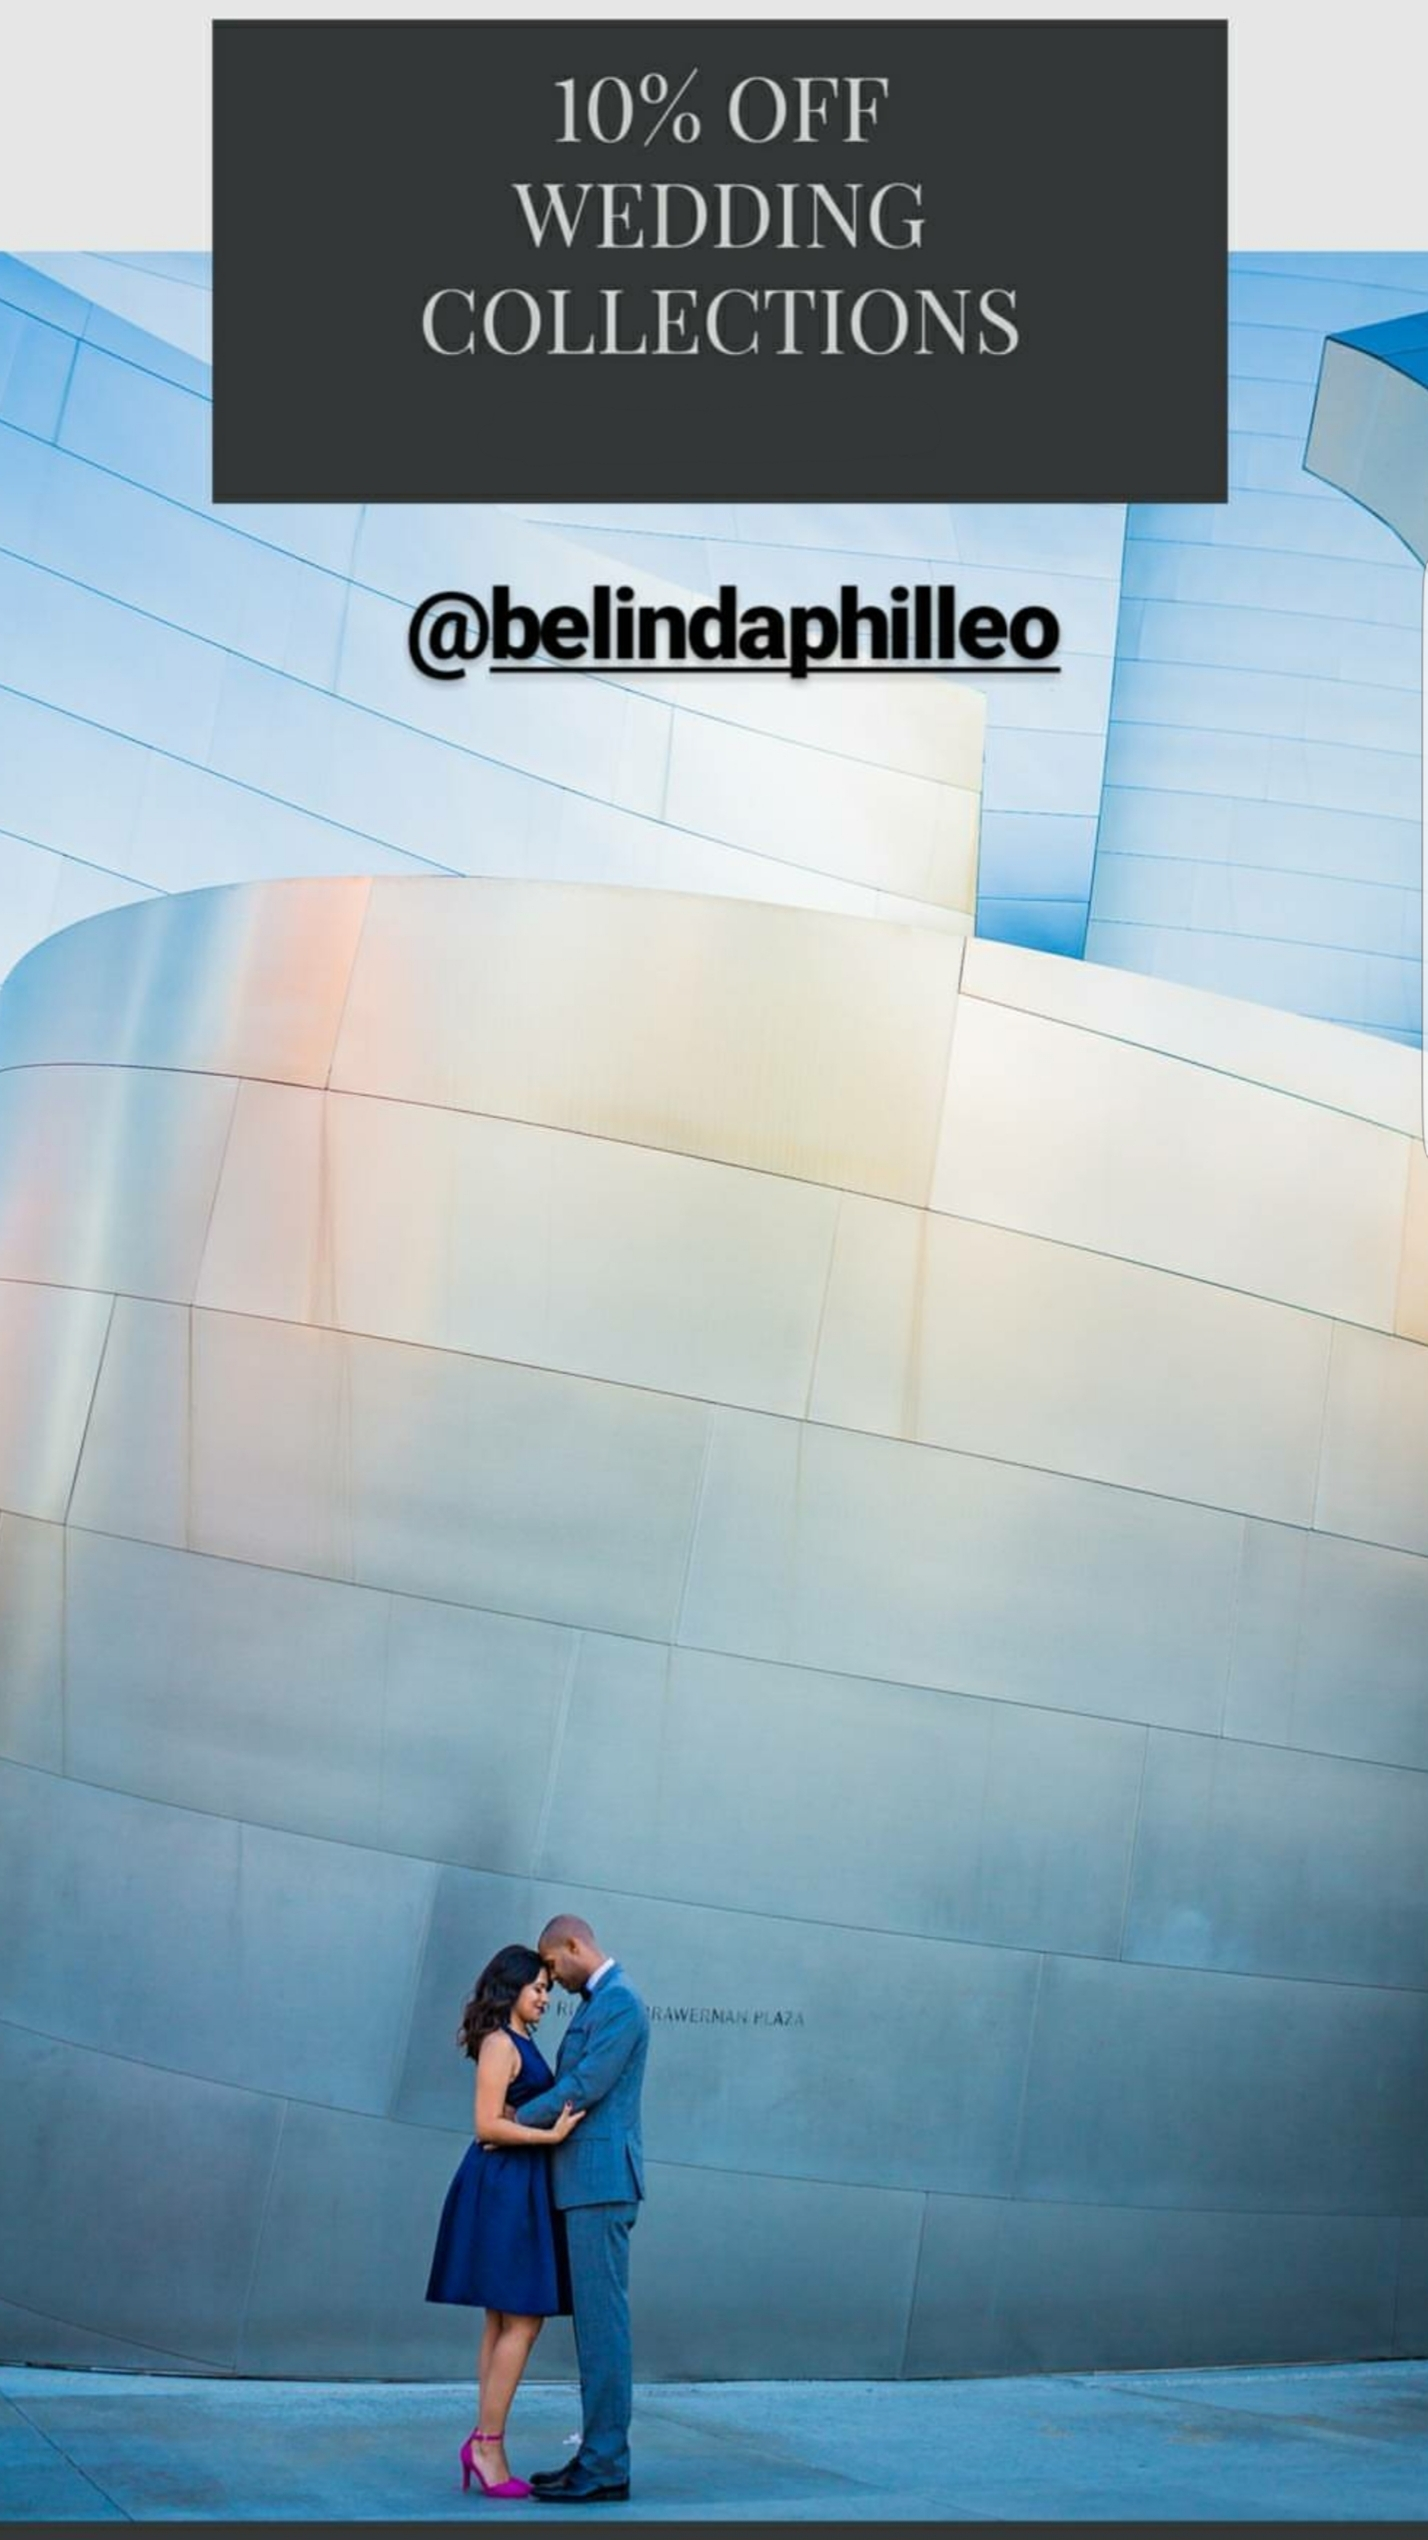 10% Off Wedding Photography by Belinda Philleo